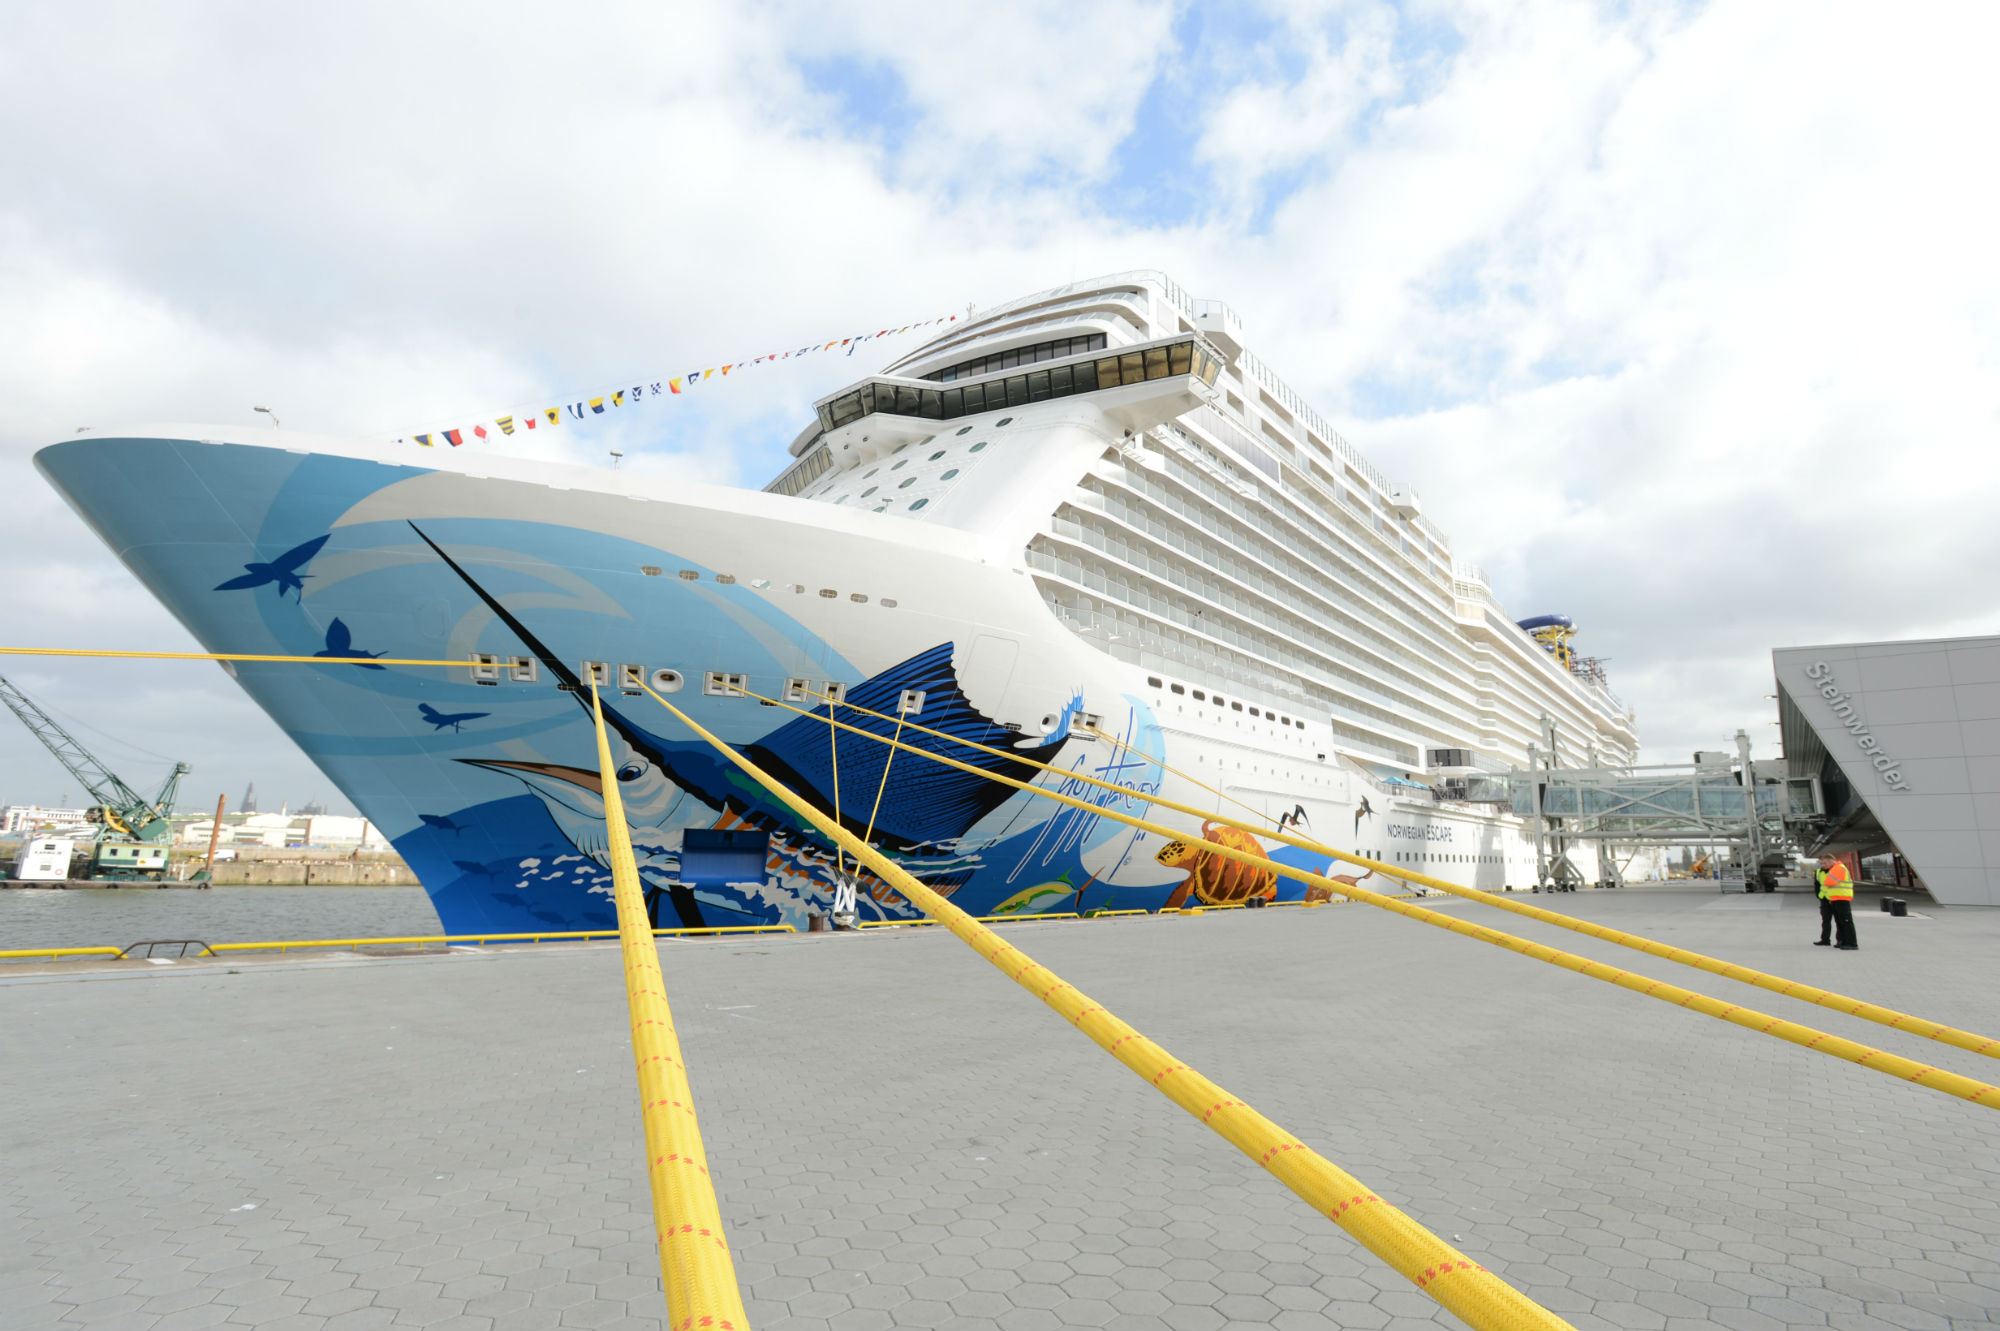 Norwegian Escape at the new Cruise Terminal, Steinwerder